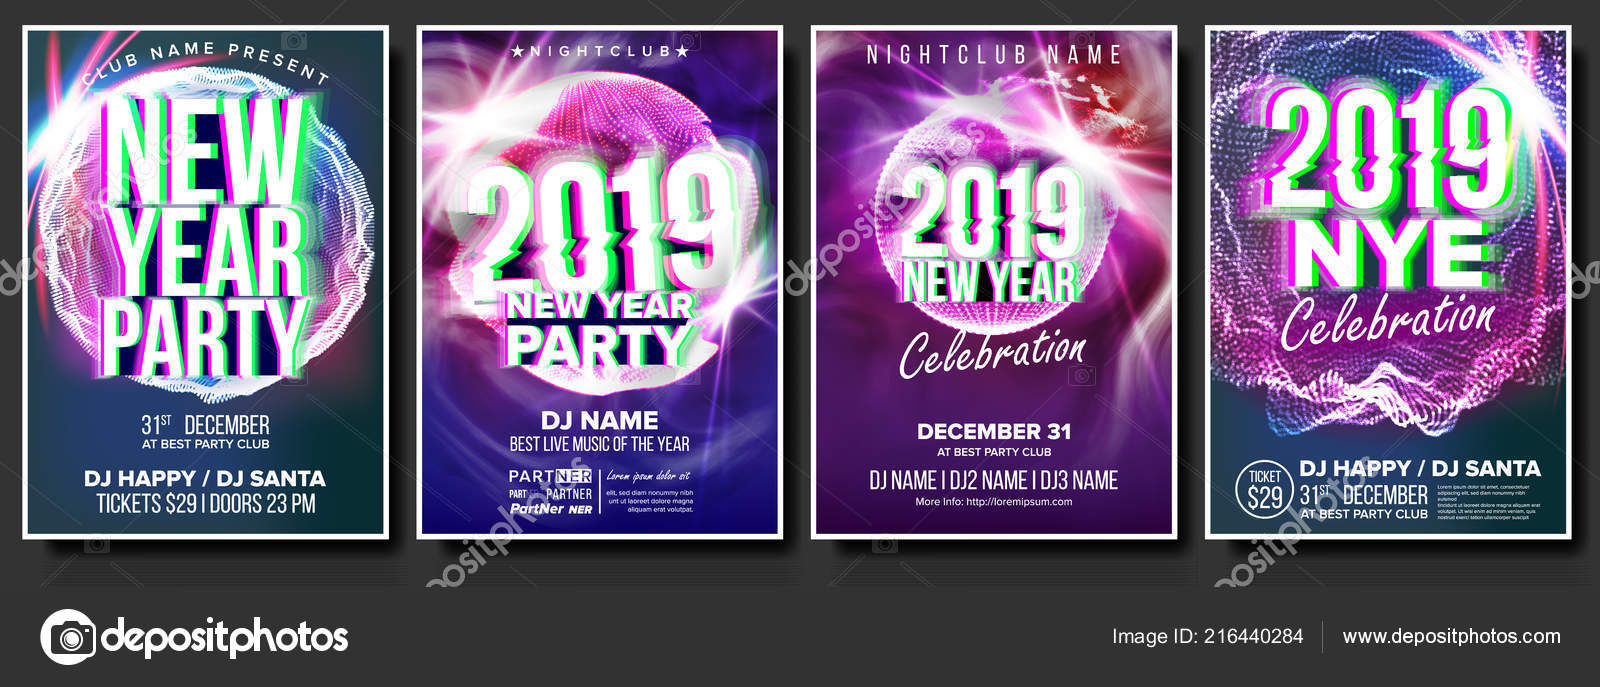 2019 party flyer poster set vector night club celebration musical concert banner happy new year celebration template background christmas disco light